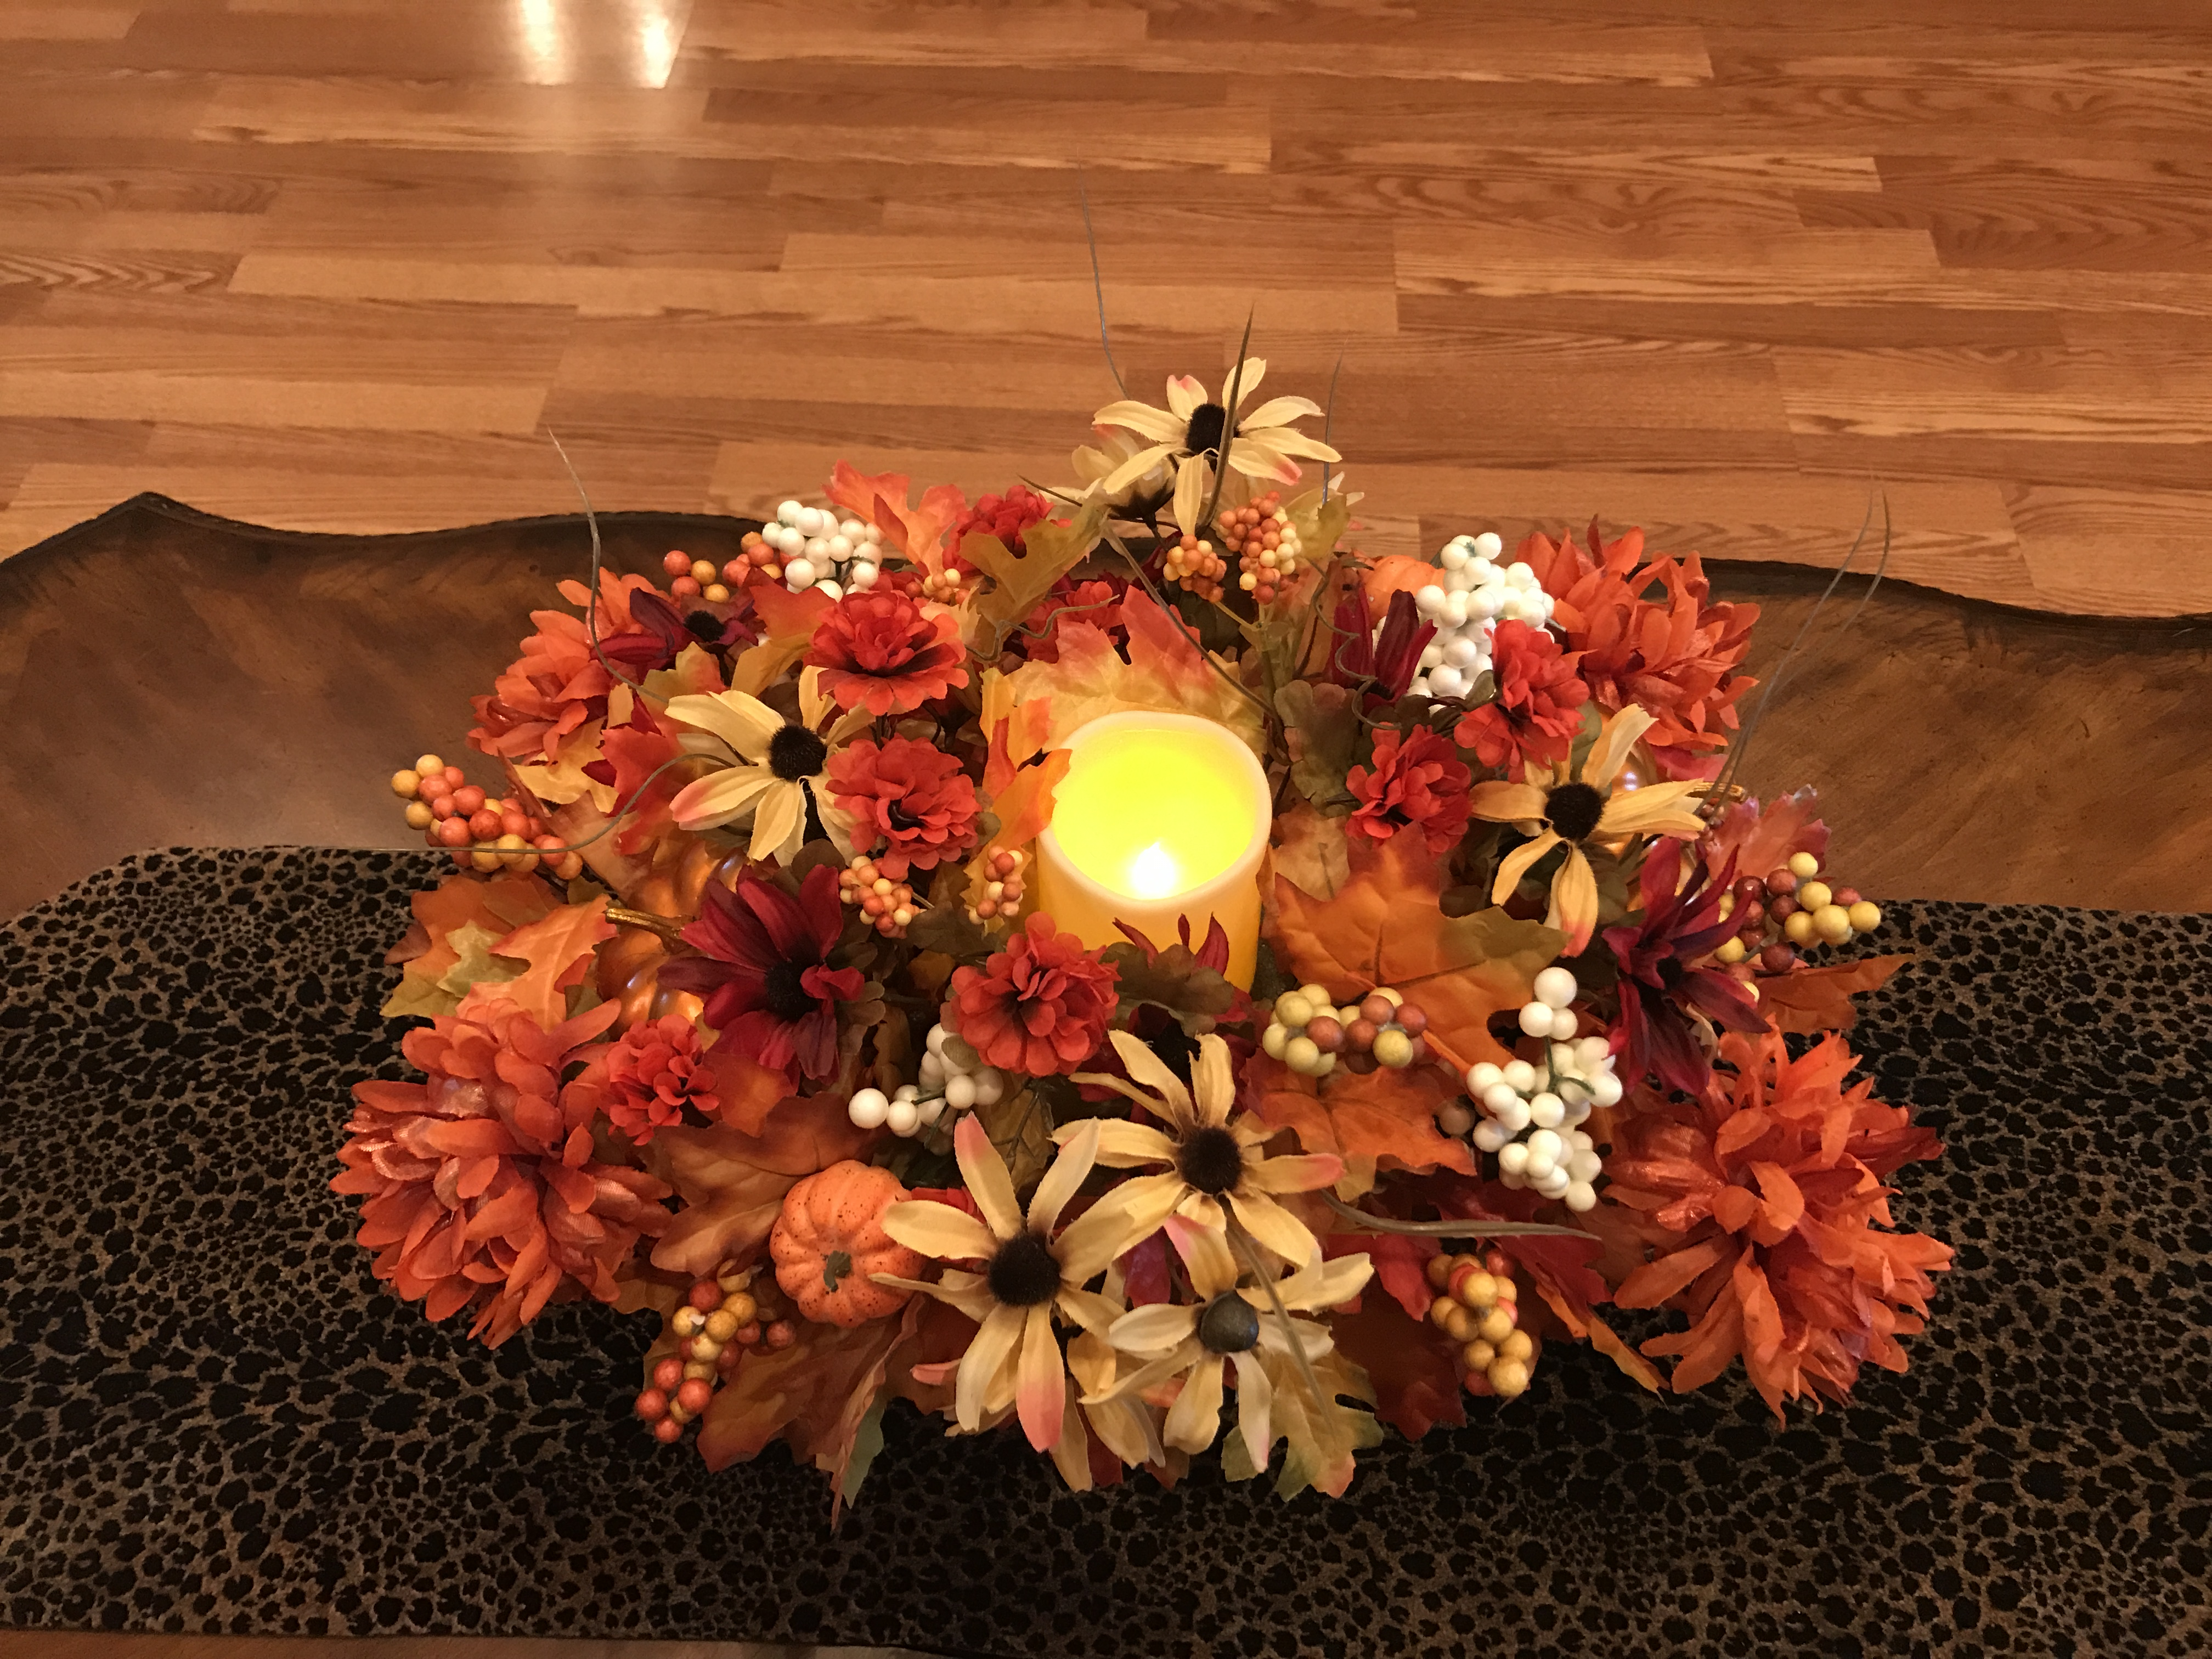 How To Make A DIY Dollar Tree Fall Centerpiece   Love To Frugal